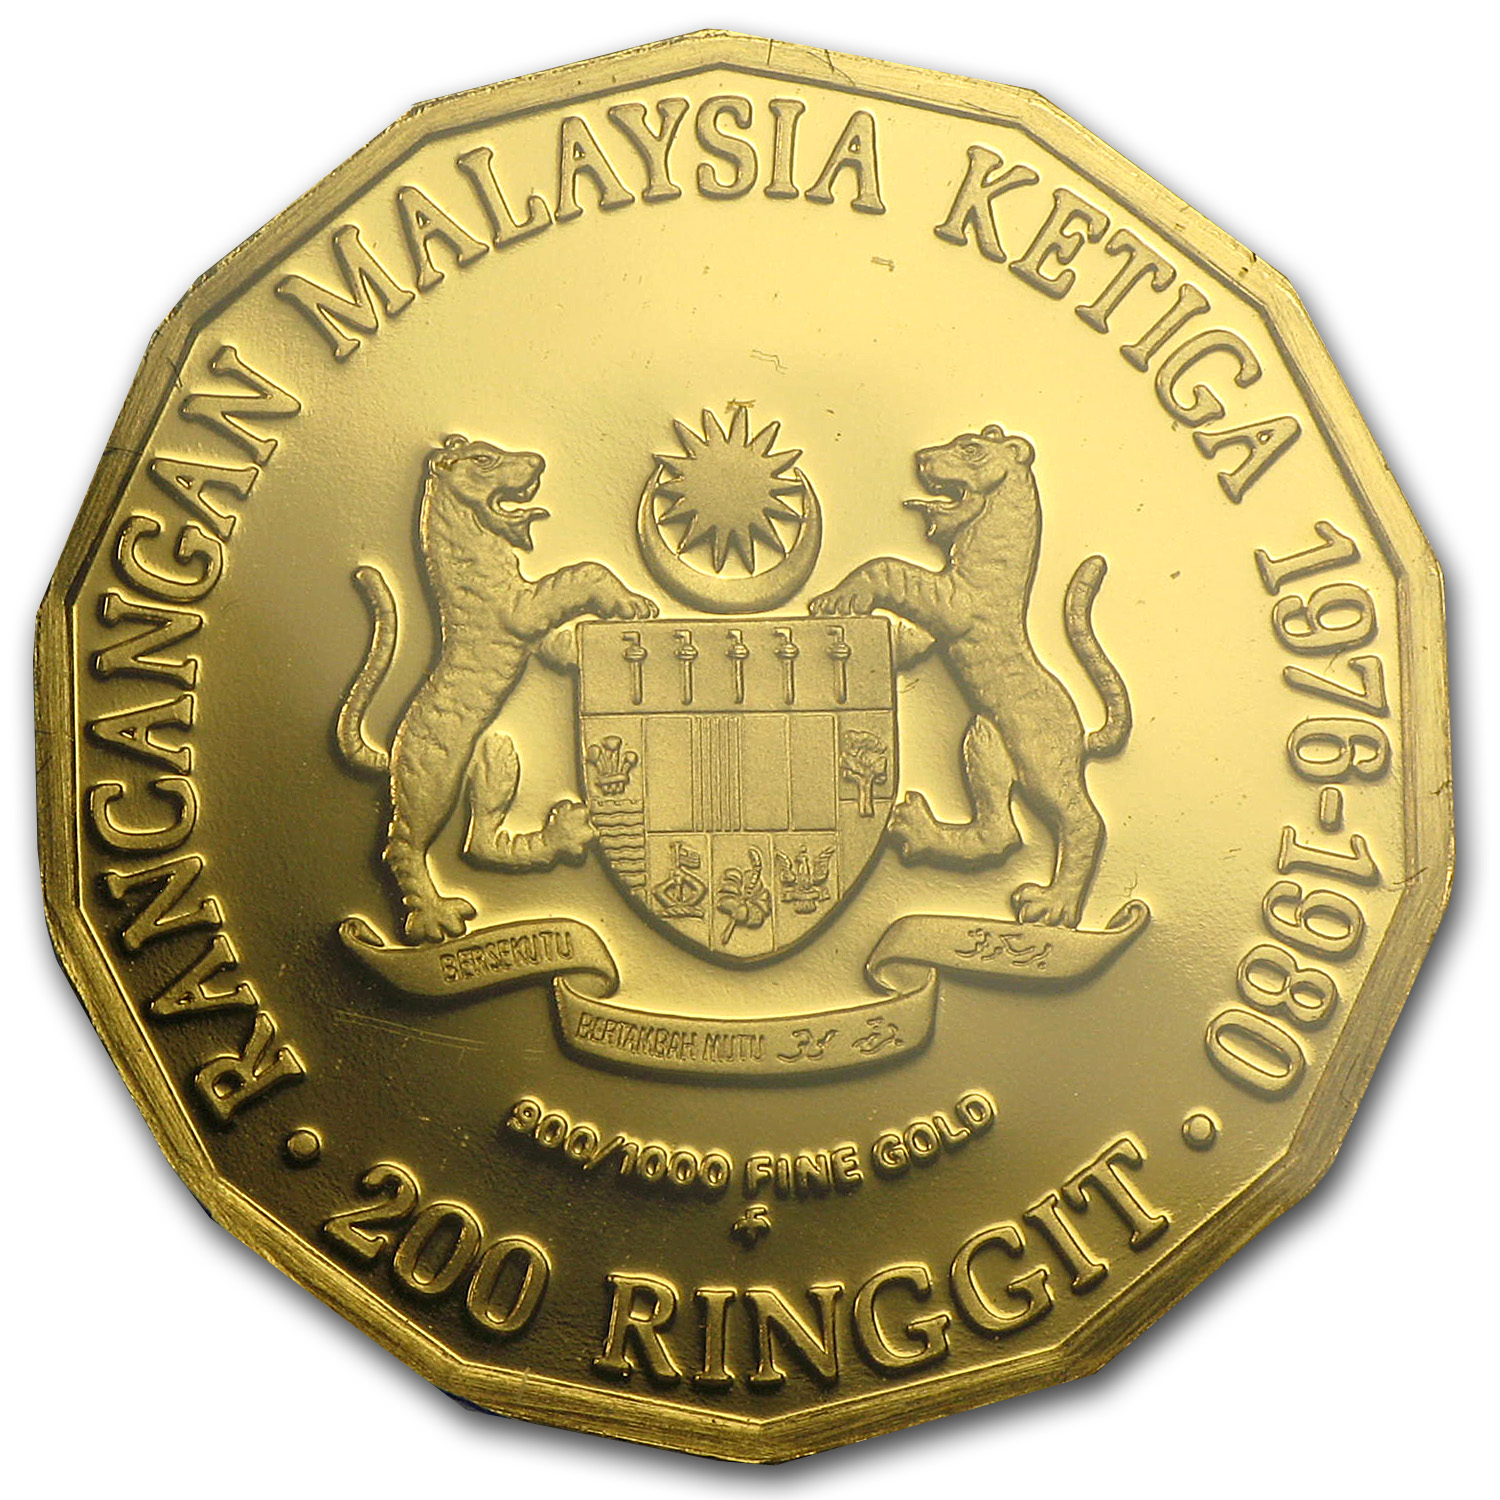 1976 Malaysia Gold 200 Ringgit Third 5-Year Plan Proof